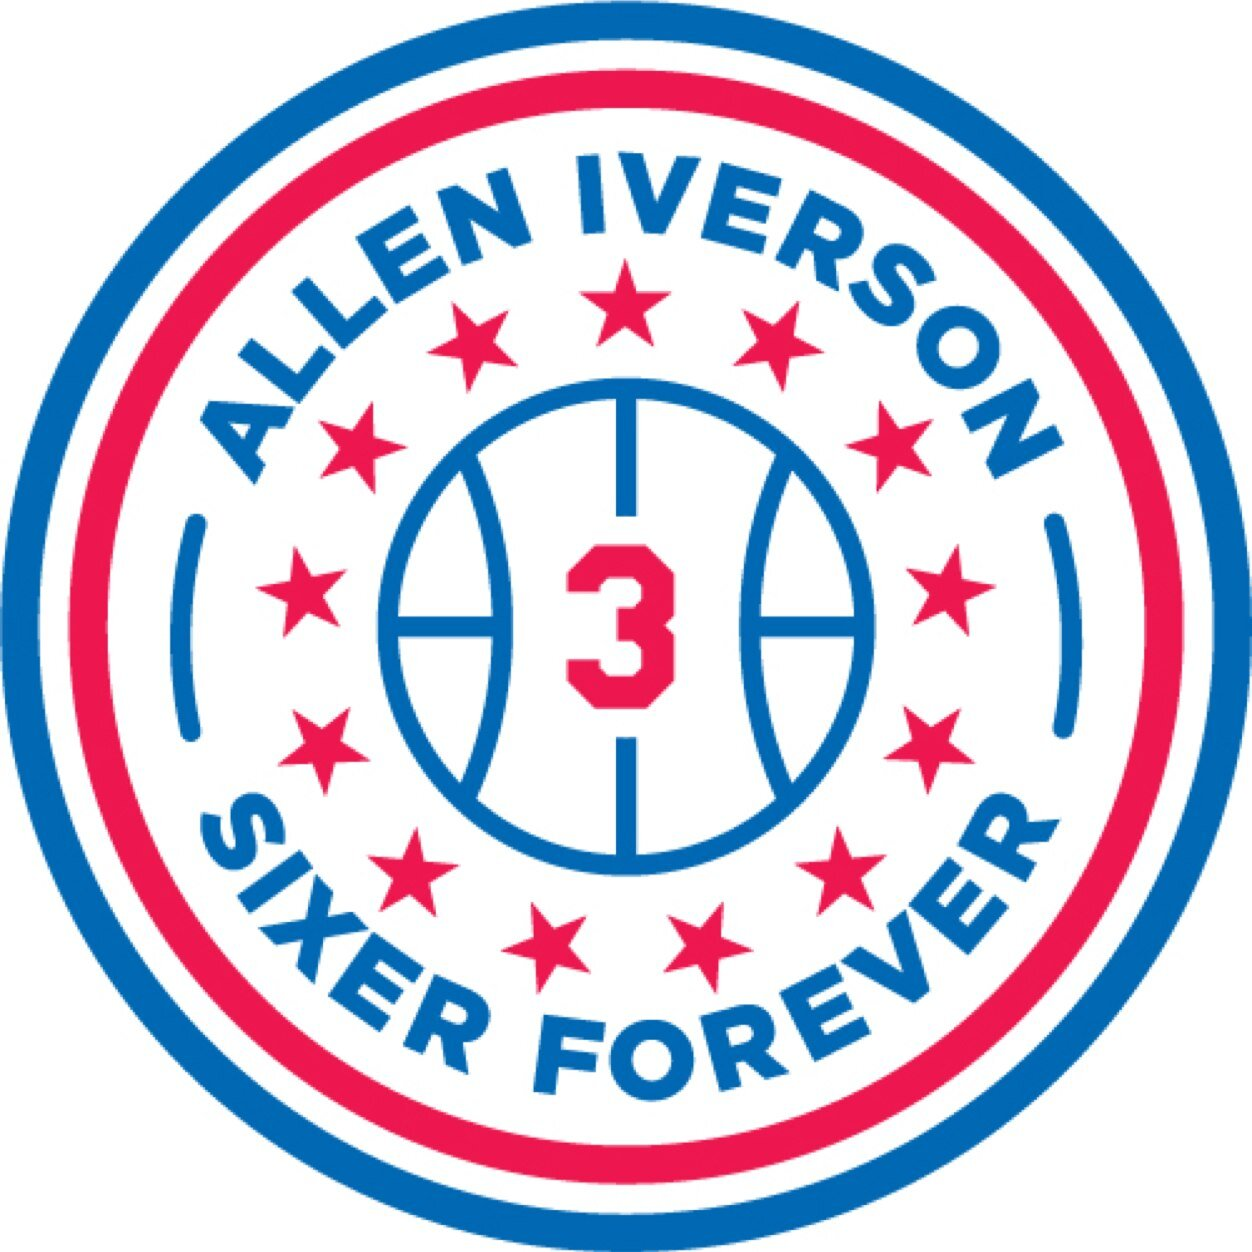 Philadelphia 76ers Logo Misc Logo (2013/14) - Allen Iverson Sixer Forever -- Patch worn by the Philadelphia 76ers on March 1, 2014 to commemorate retiring of the jersey number of Allen Iverson SportsLogos.Net